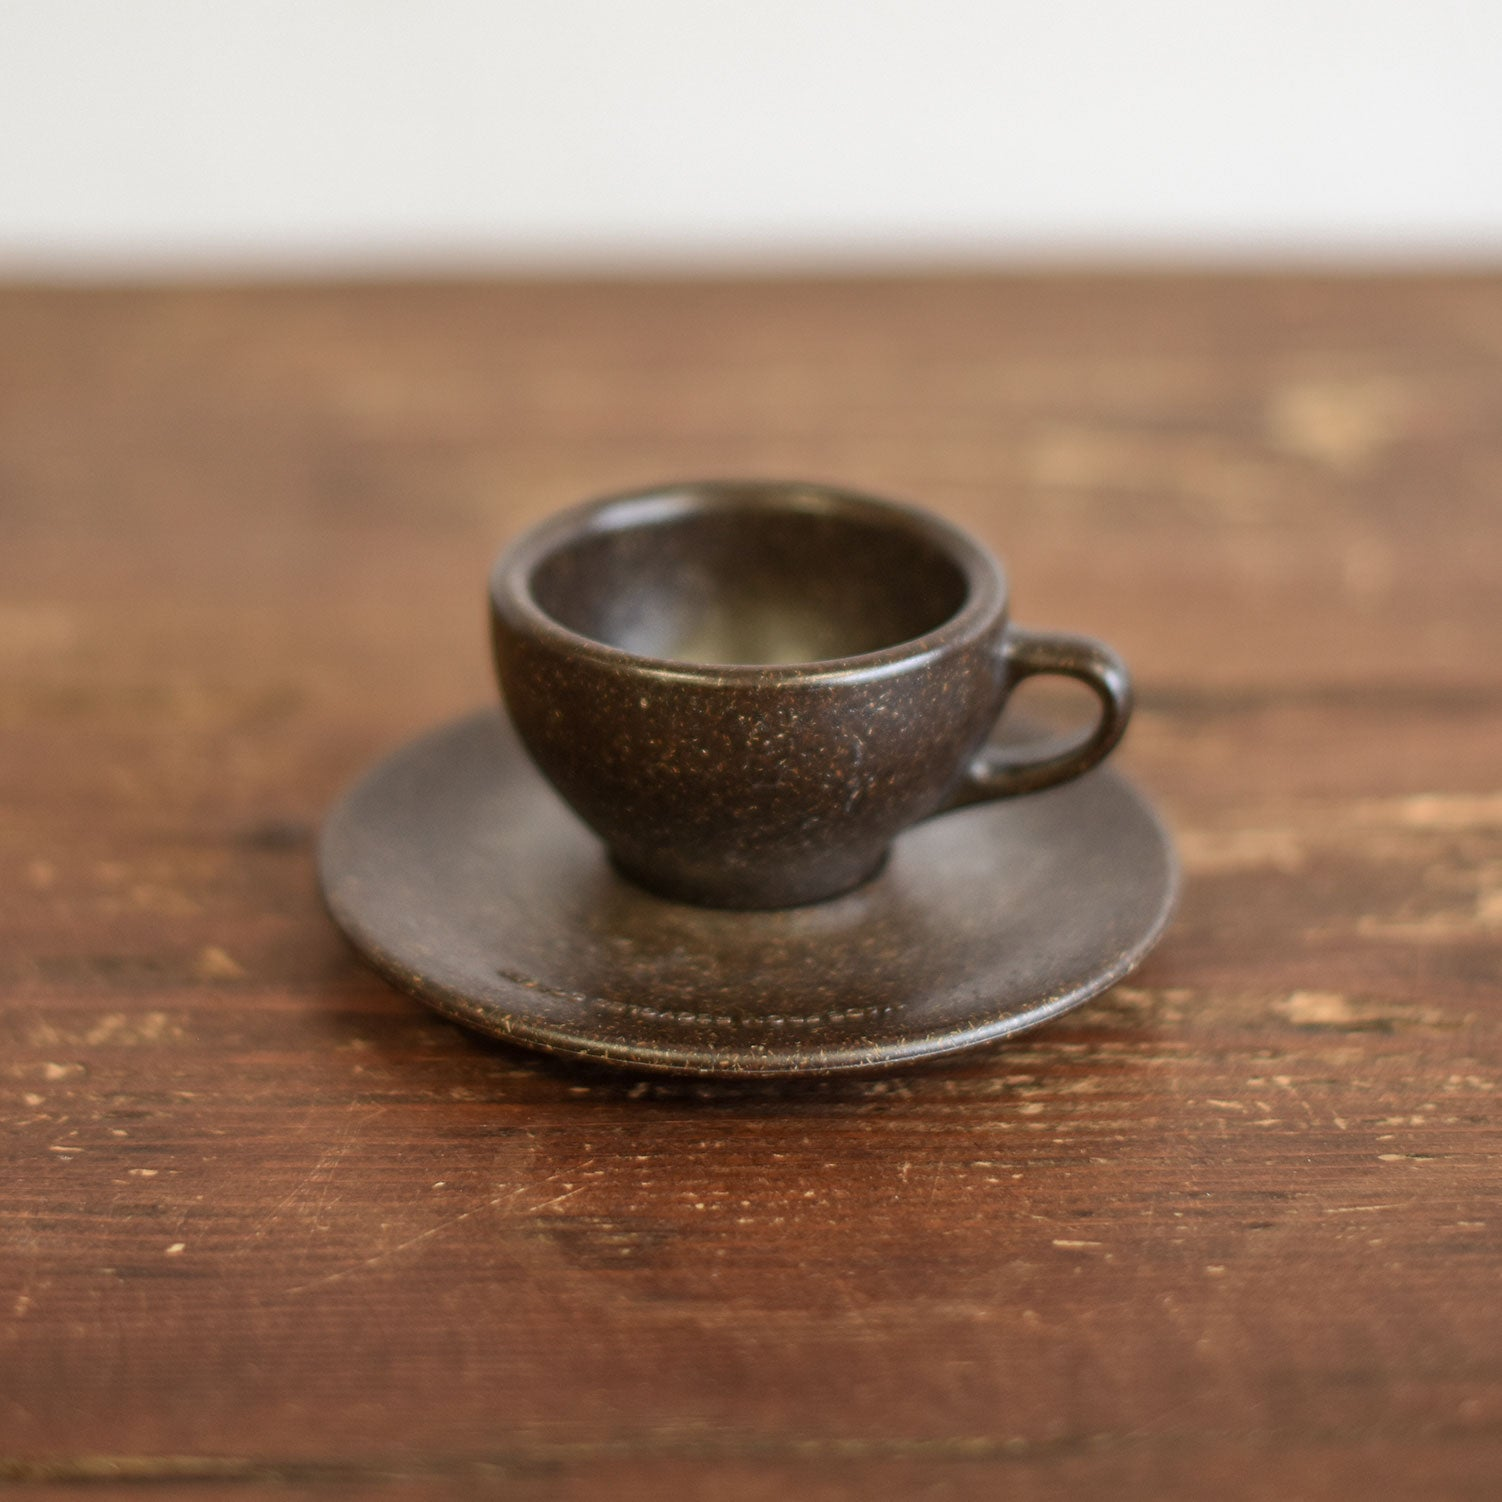 Cups Made of Ground Coffee